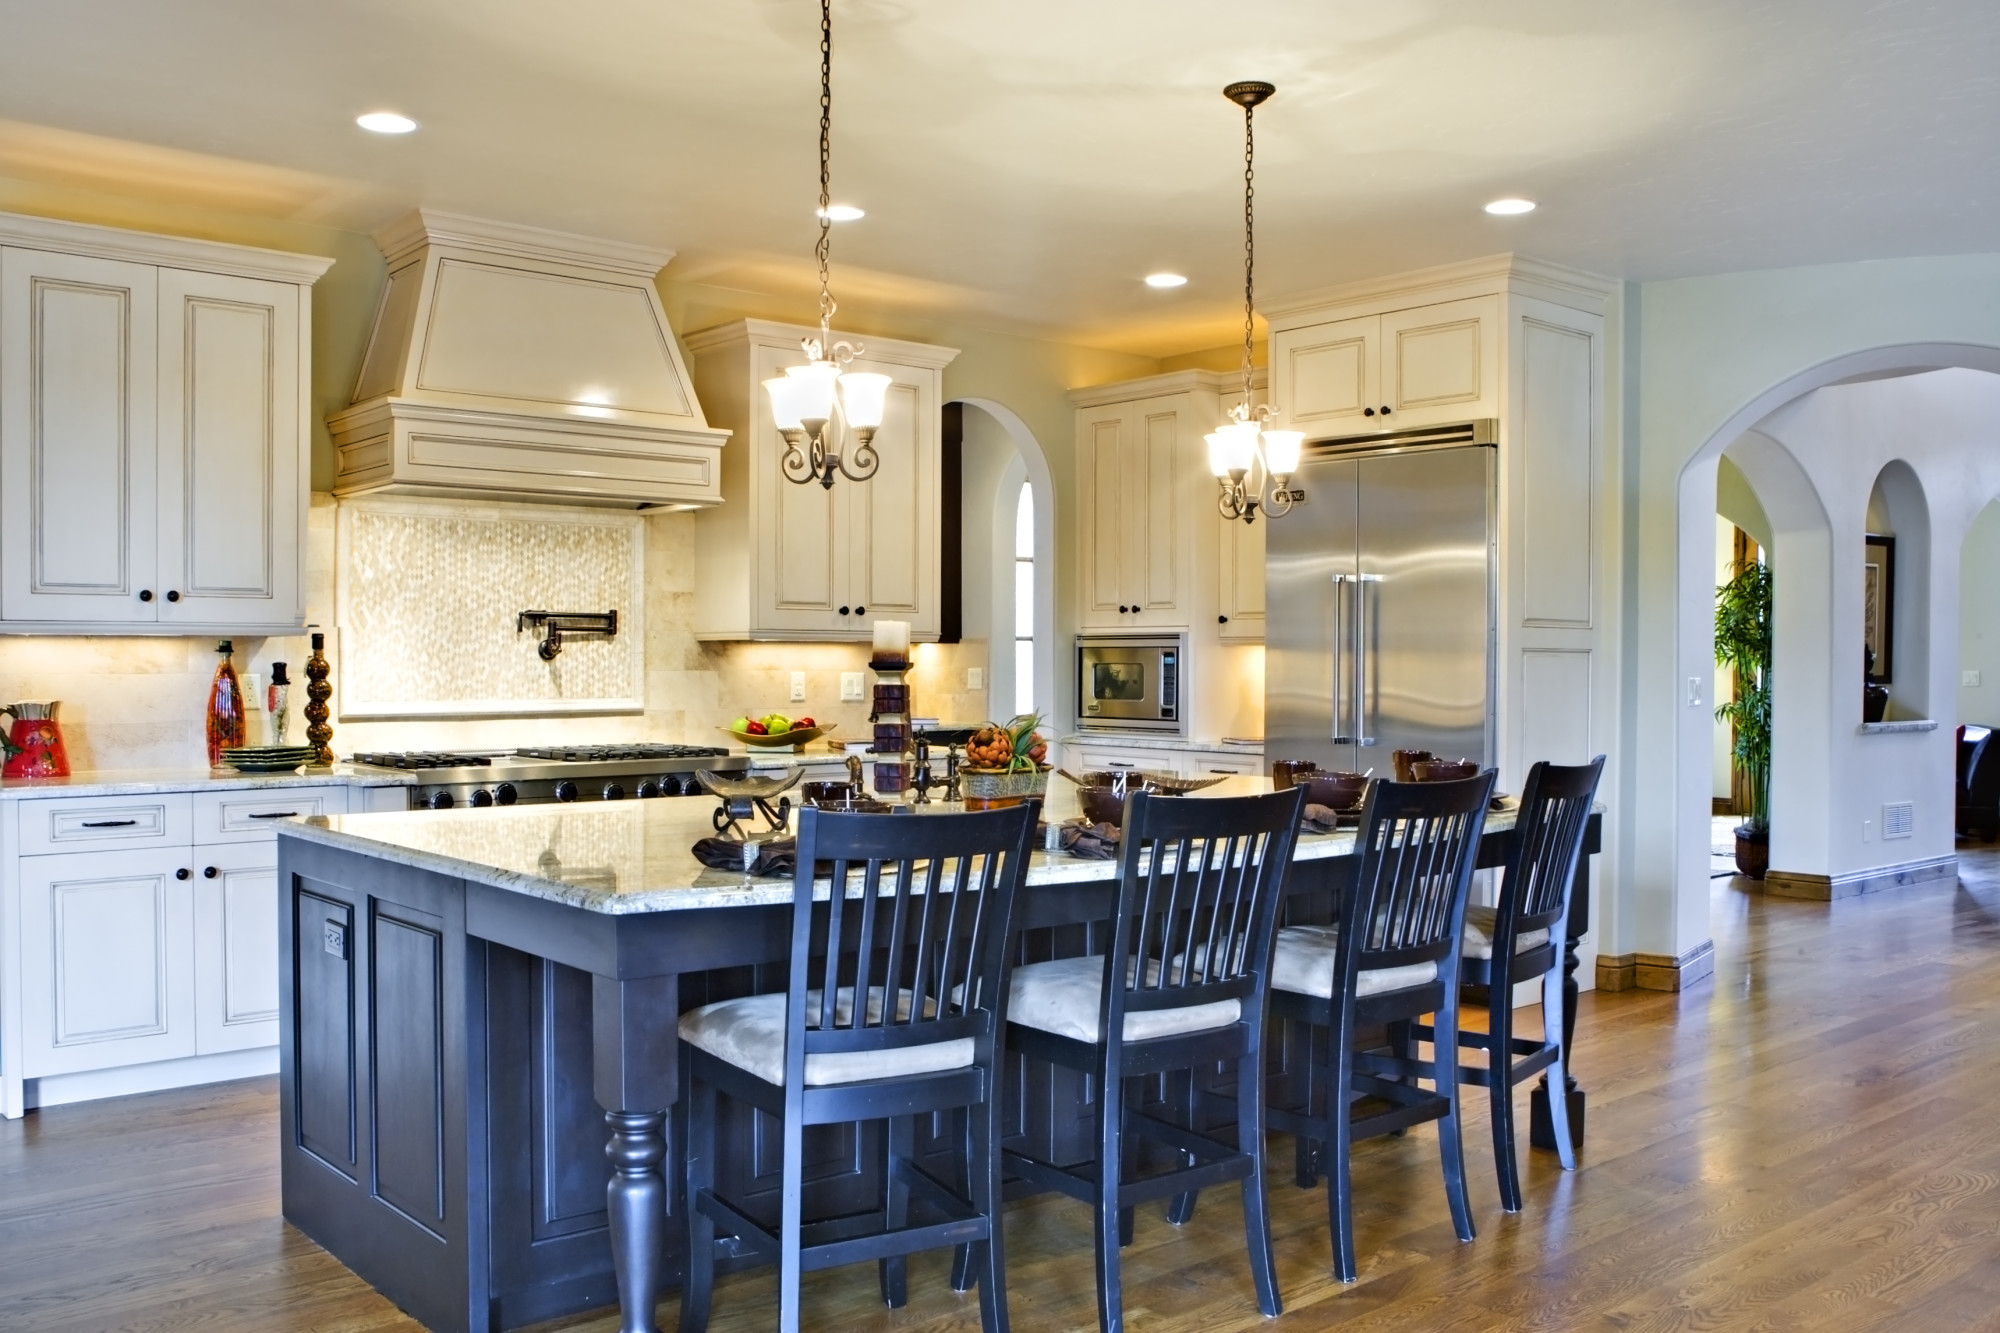 Incredible Island Countertop Ideas: Why You Should Change ...